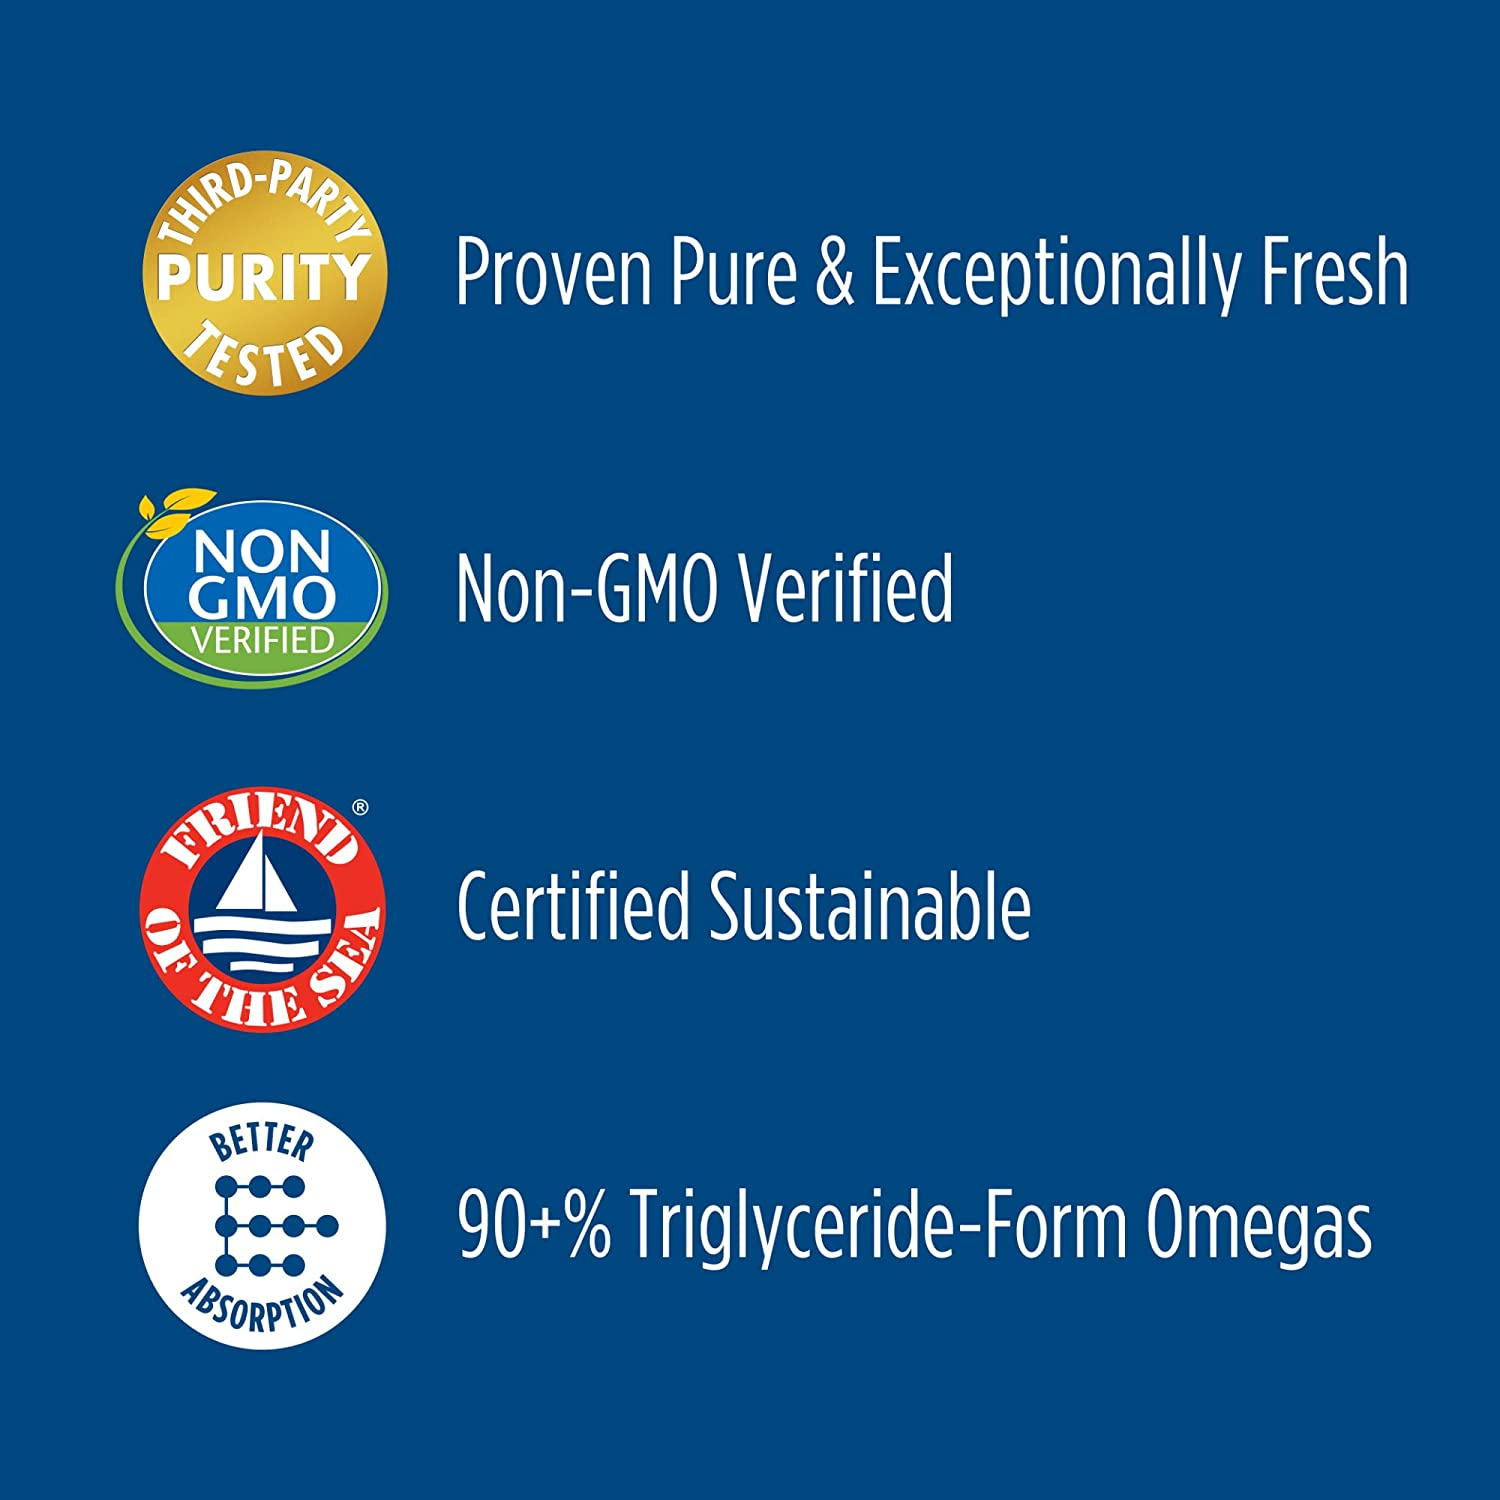 Nordic Naturals Ultimate Omega in Fish Gelatin, Lemon Flavor - 1280 mg Omega-3 - 60 Soft Gels - High-Potency Fish Oil Supplement - EPA & DHA - Promotes Brain & Heart Health - Non-GMO - 30 Servings